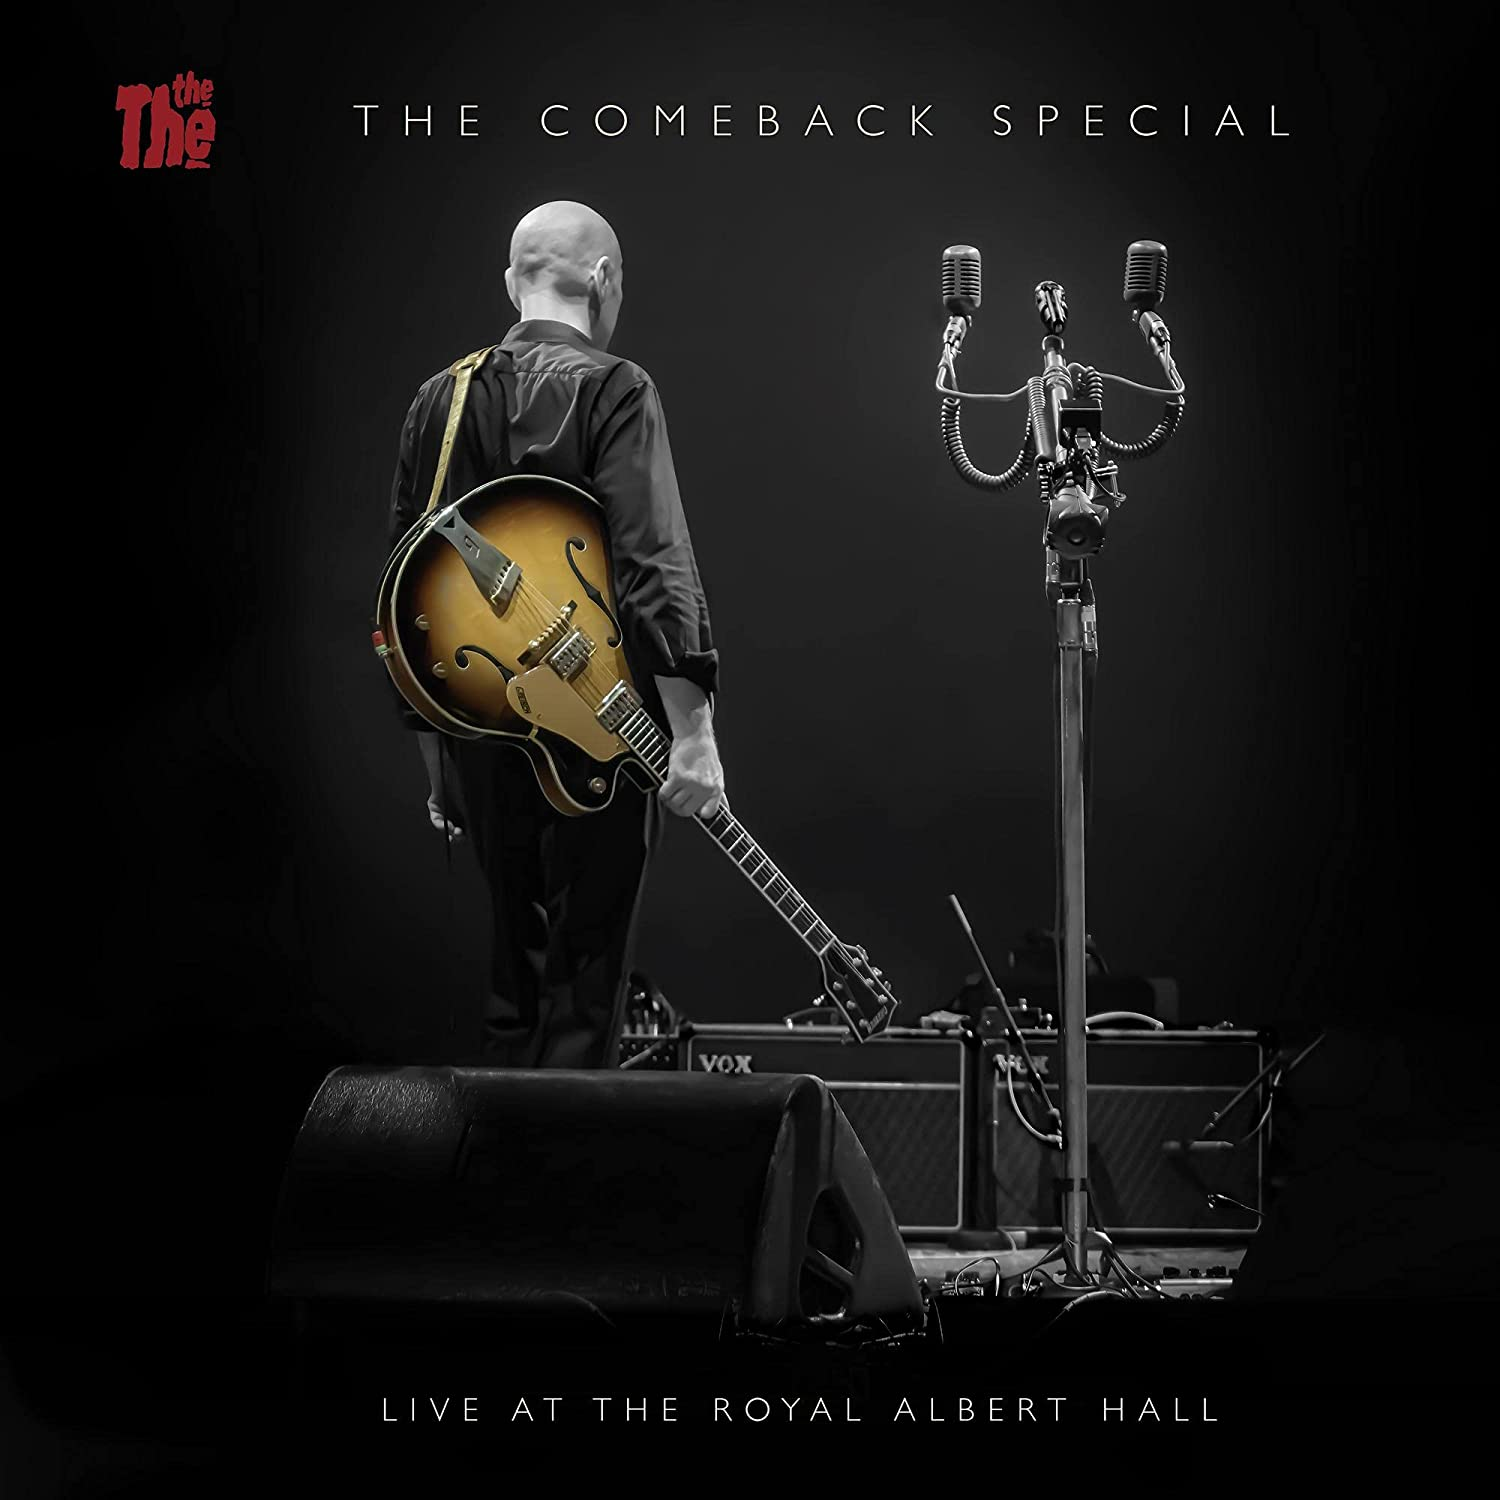 The Comeback Special - The The - Musik -  - 4029759164739 - 1. oktober 2021